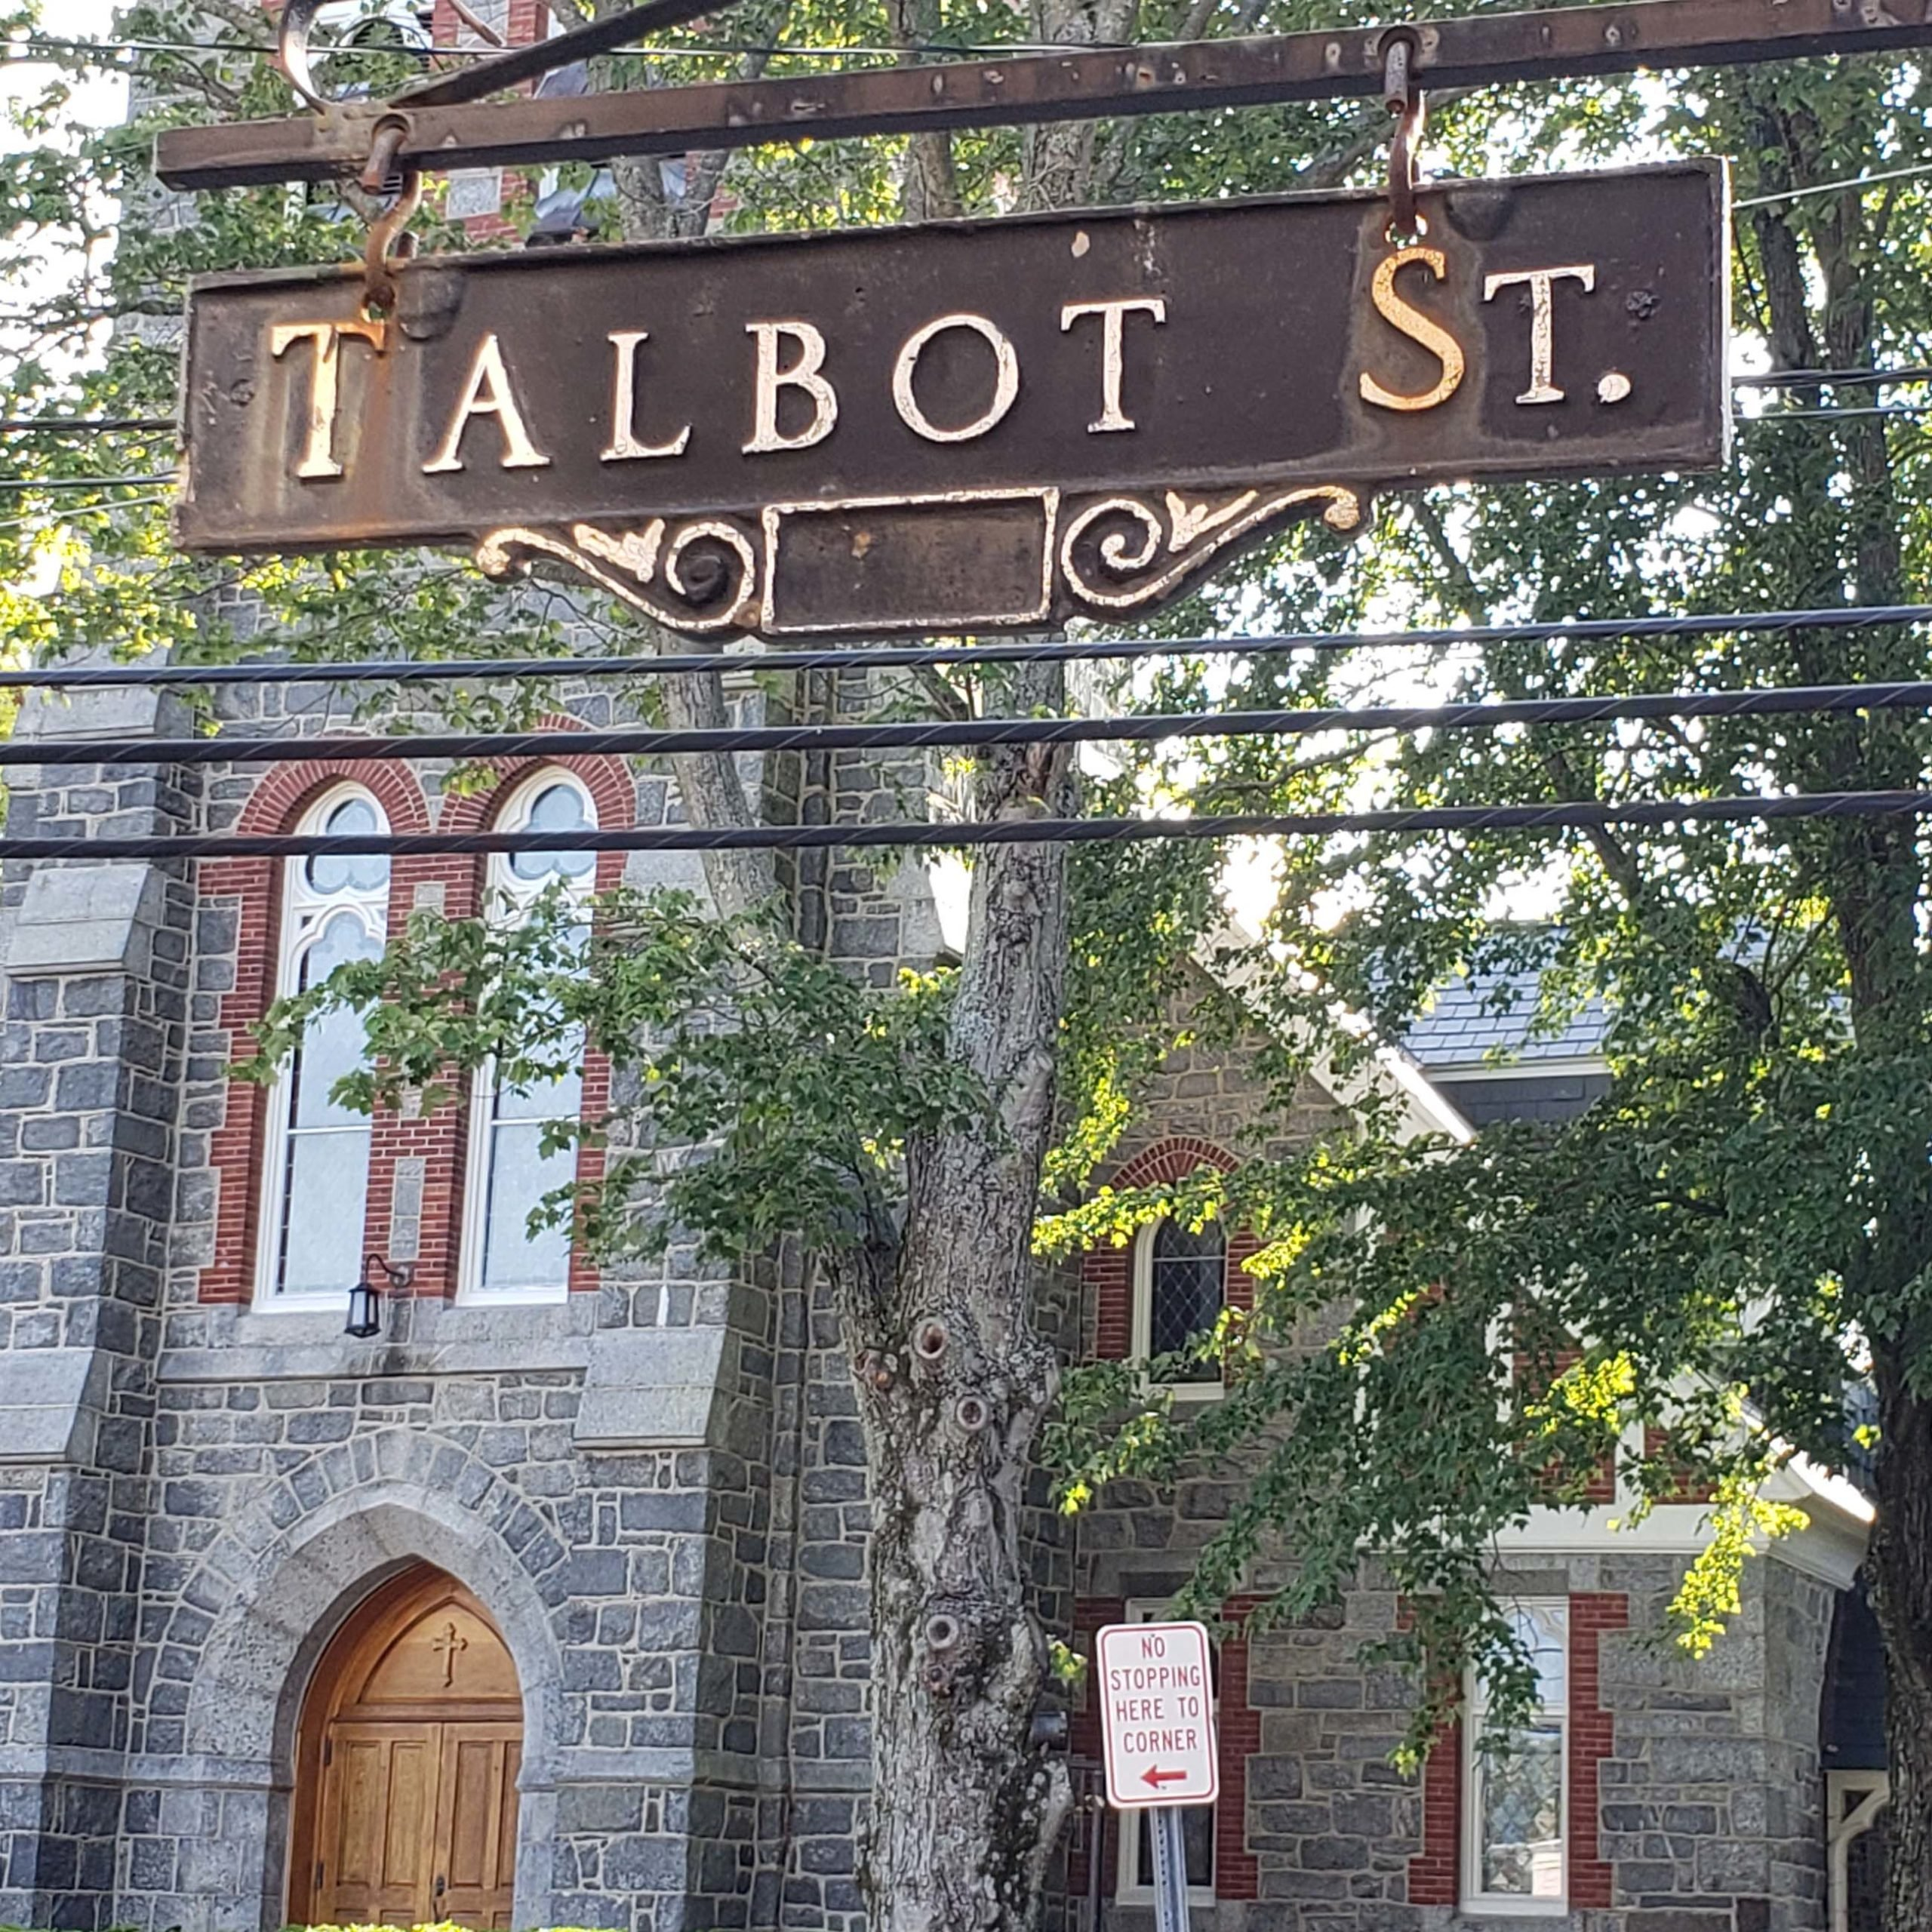 Talbot Street sign and church